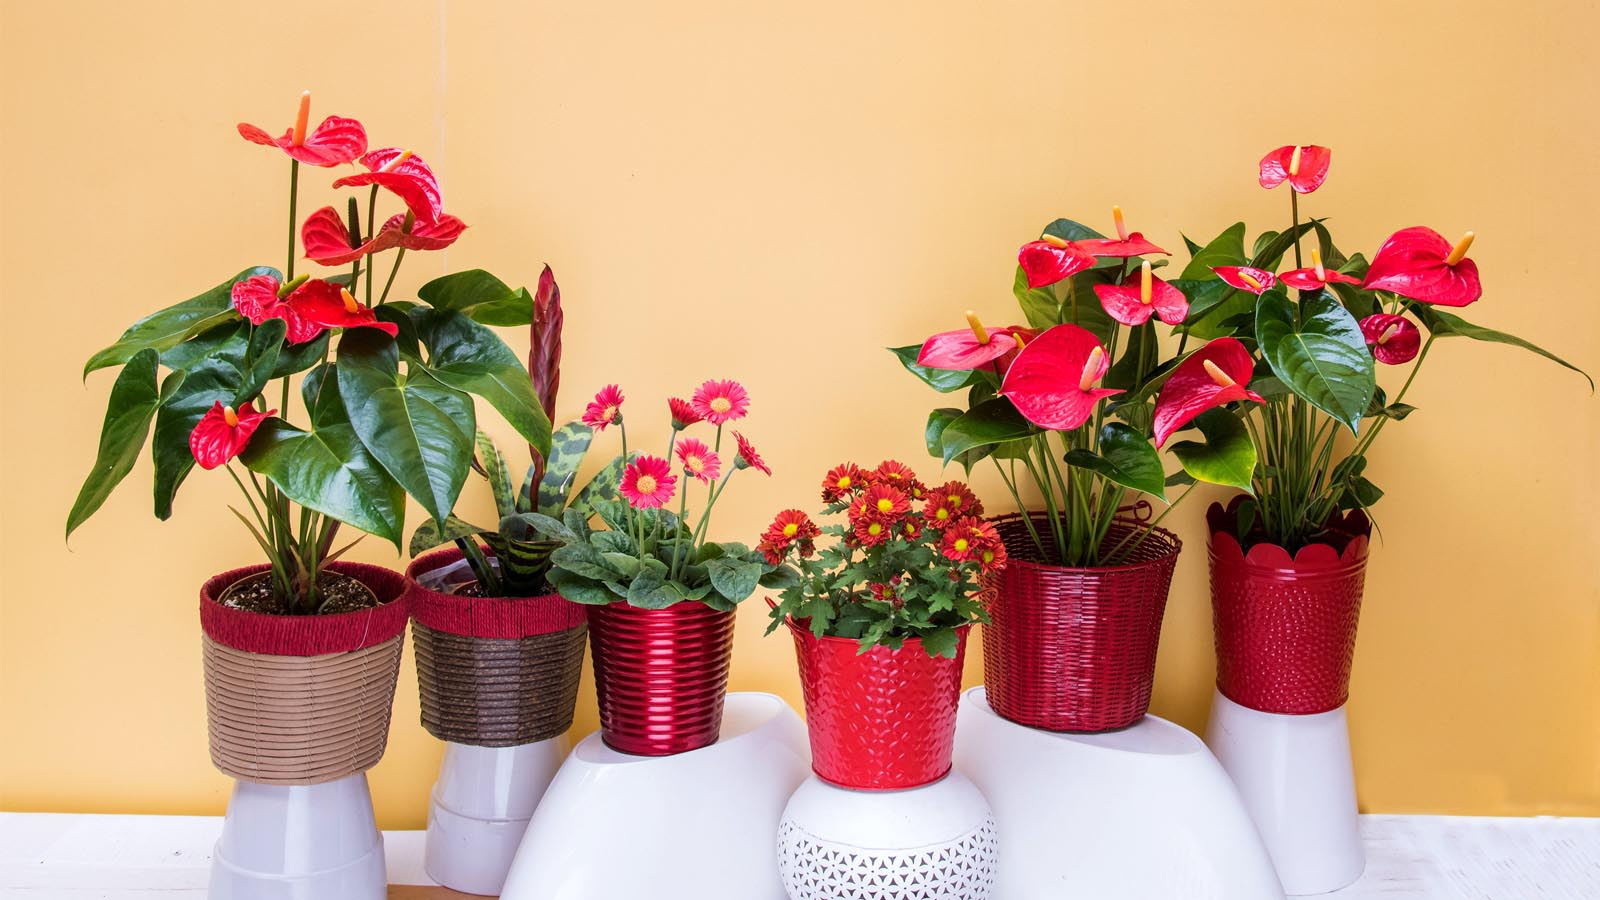 Florance Flora - India's leading Floriculture products company since 1980